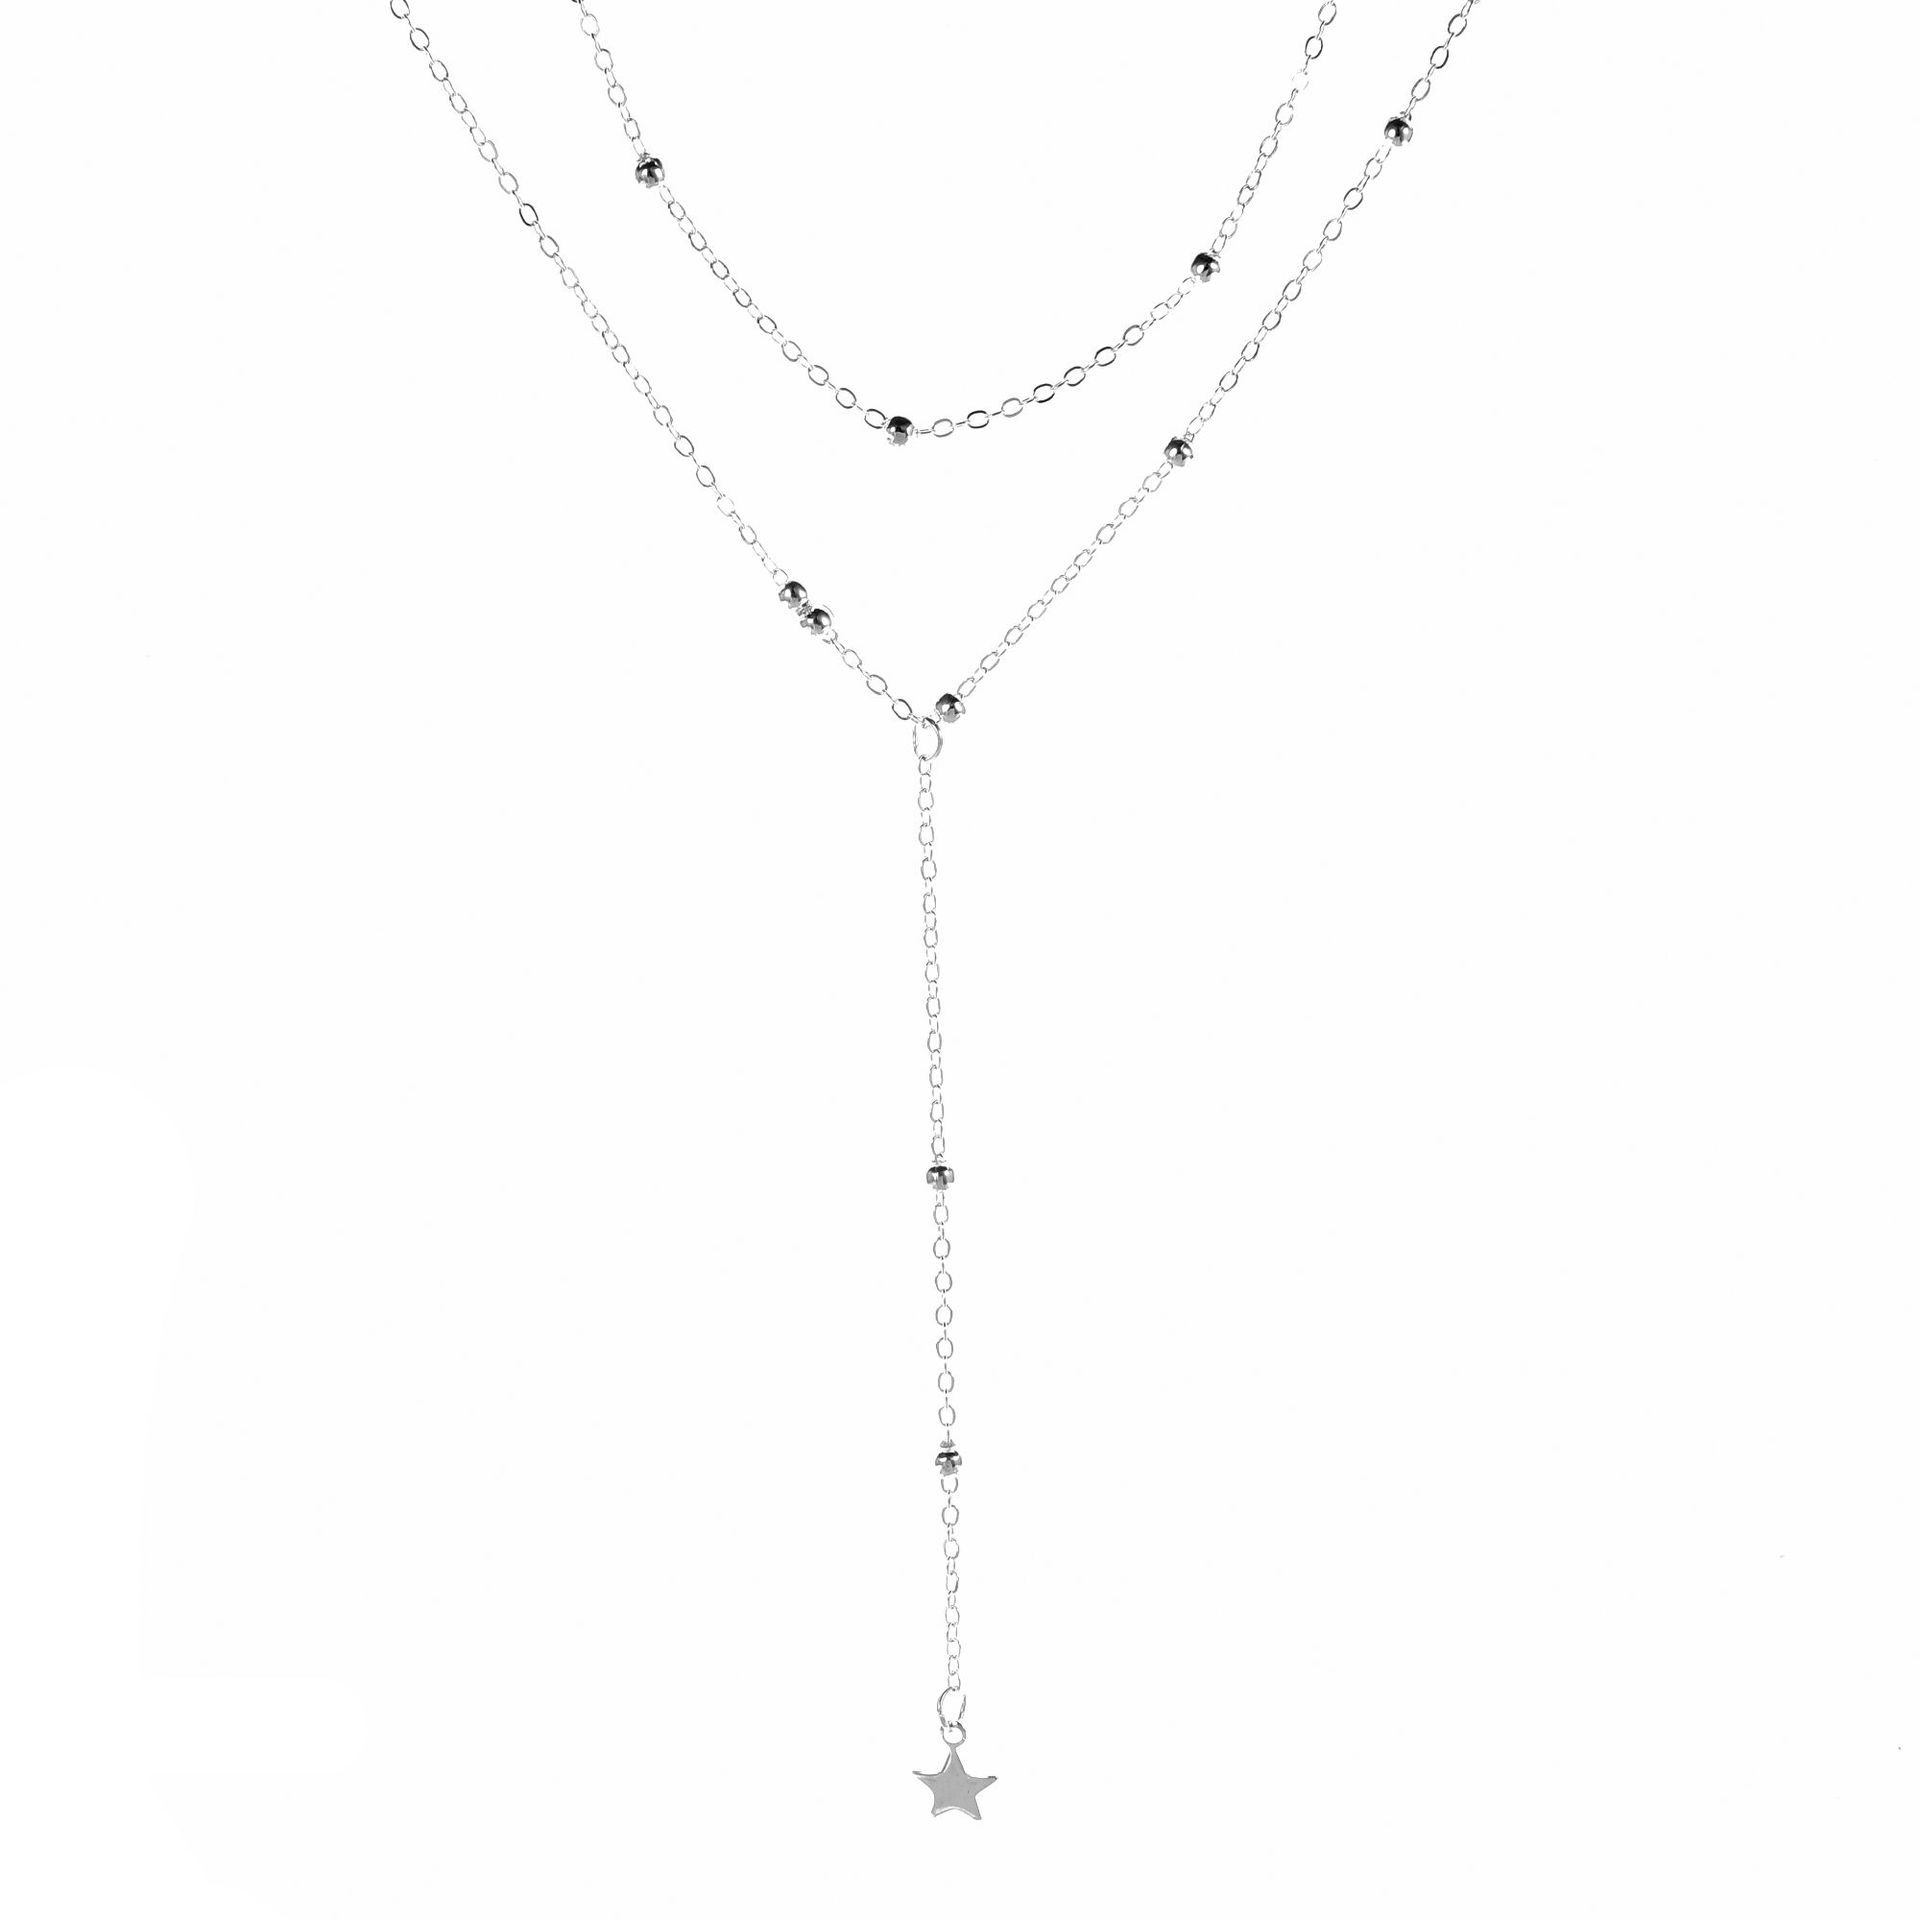 Hot Selling New Products Versitile Fashion Women's Short Clavicle Necklace Five-pointed Star Pendant Necklace Necklace